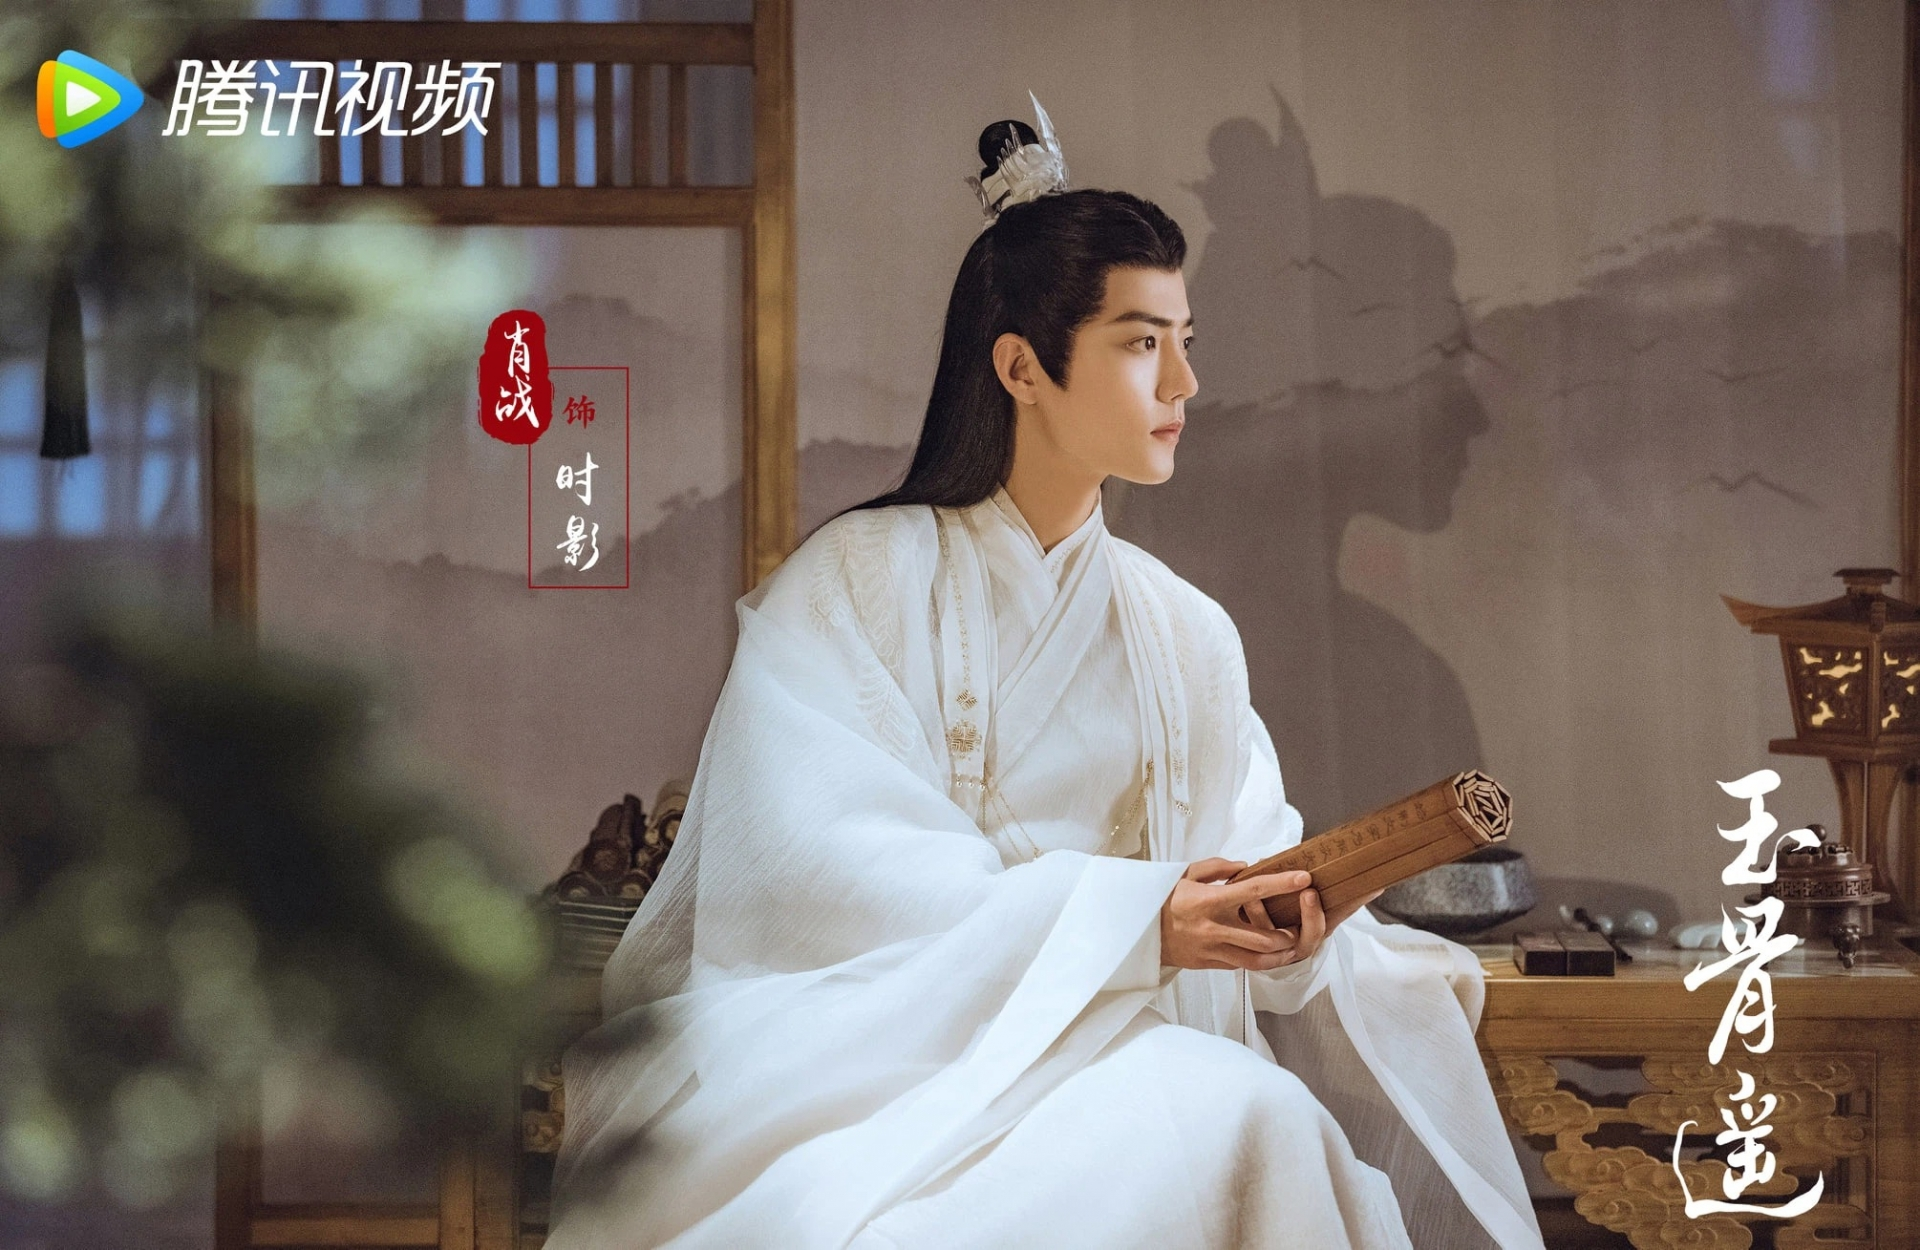 Cung Tuan replaces Tieu Chien to play Khanh Du Nien 2, Cnet is excited: Beauty and acting are better than the old man 5